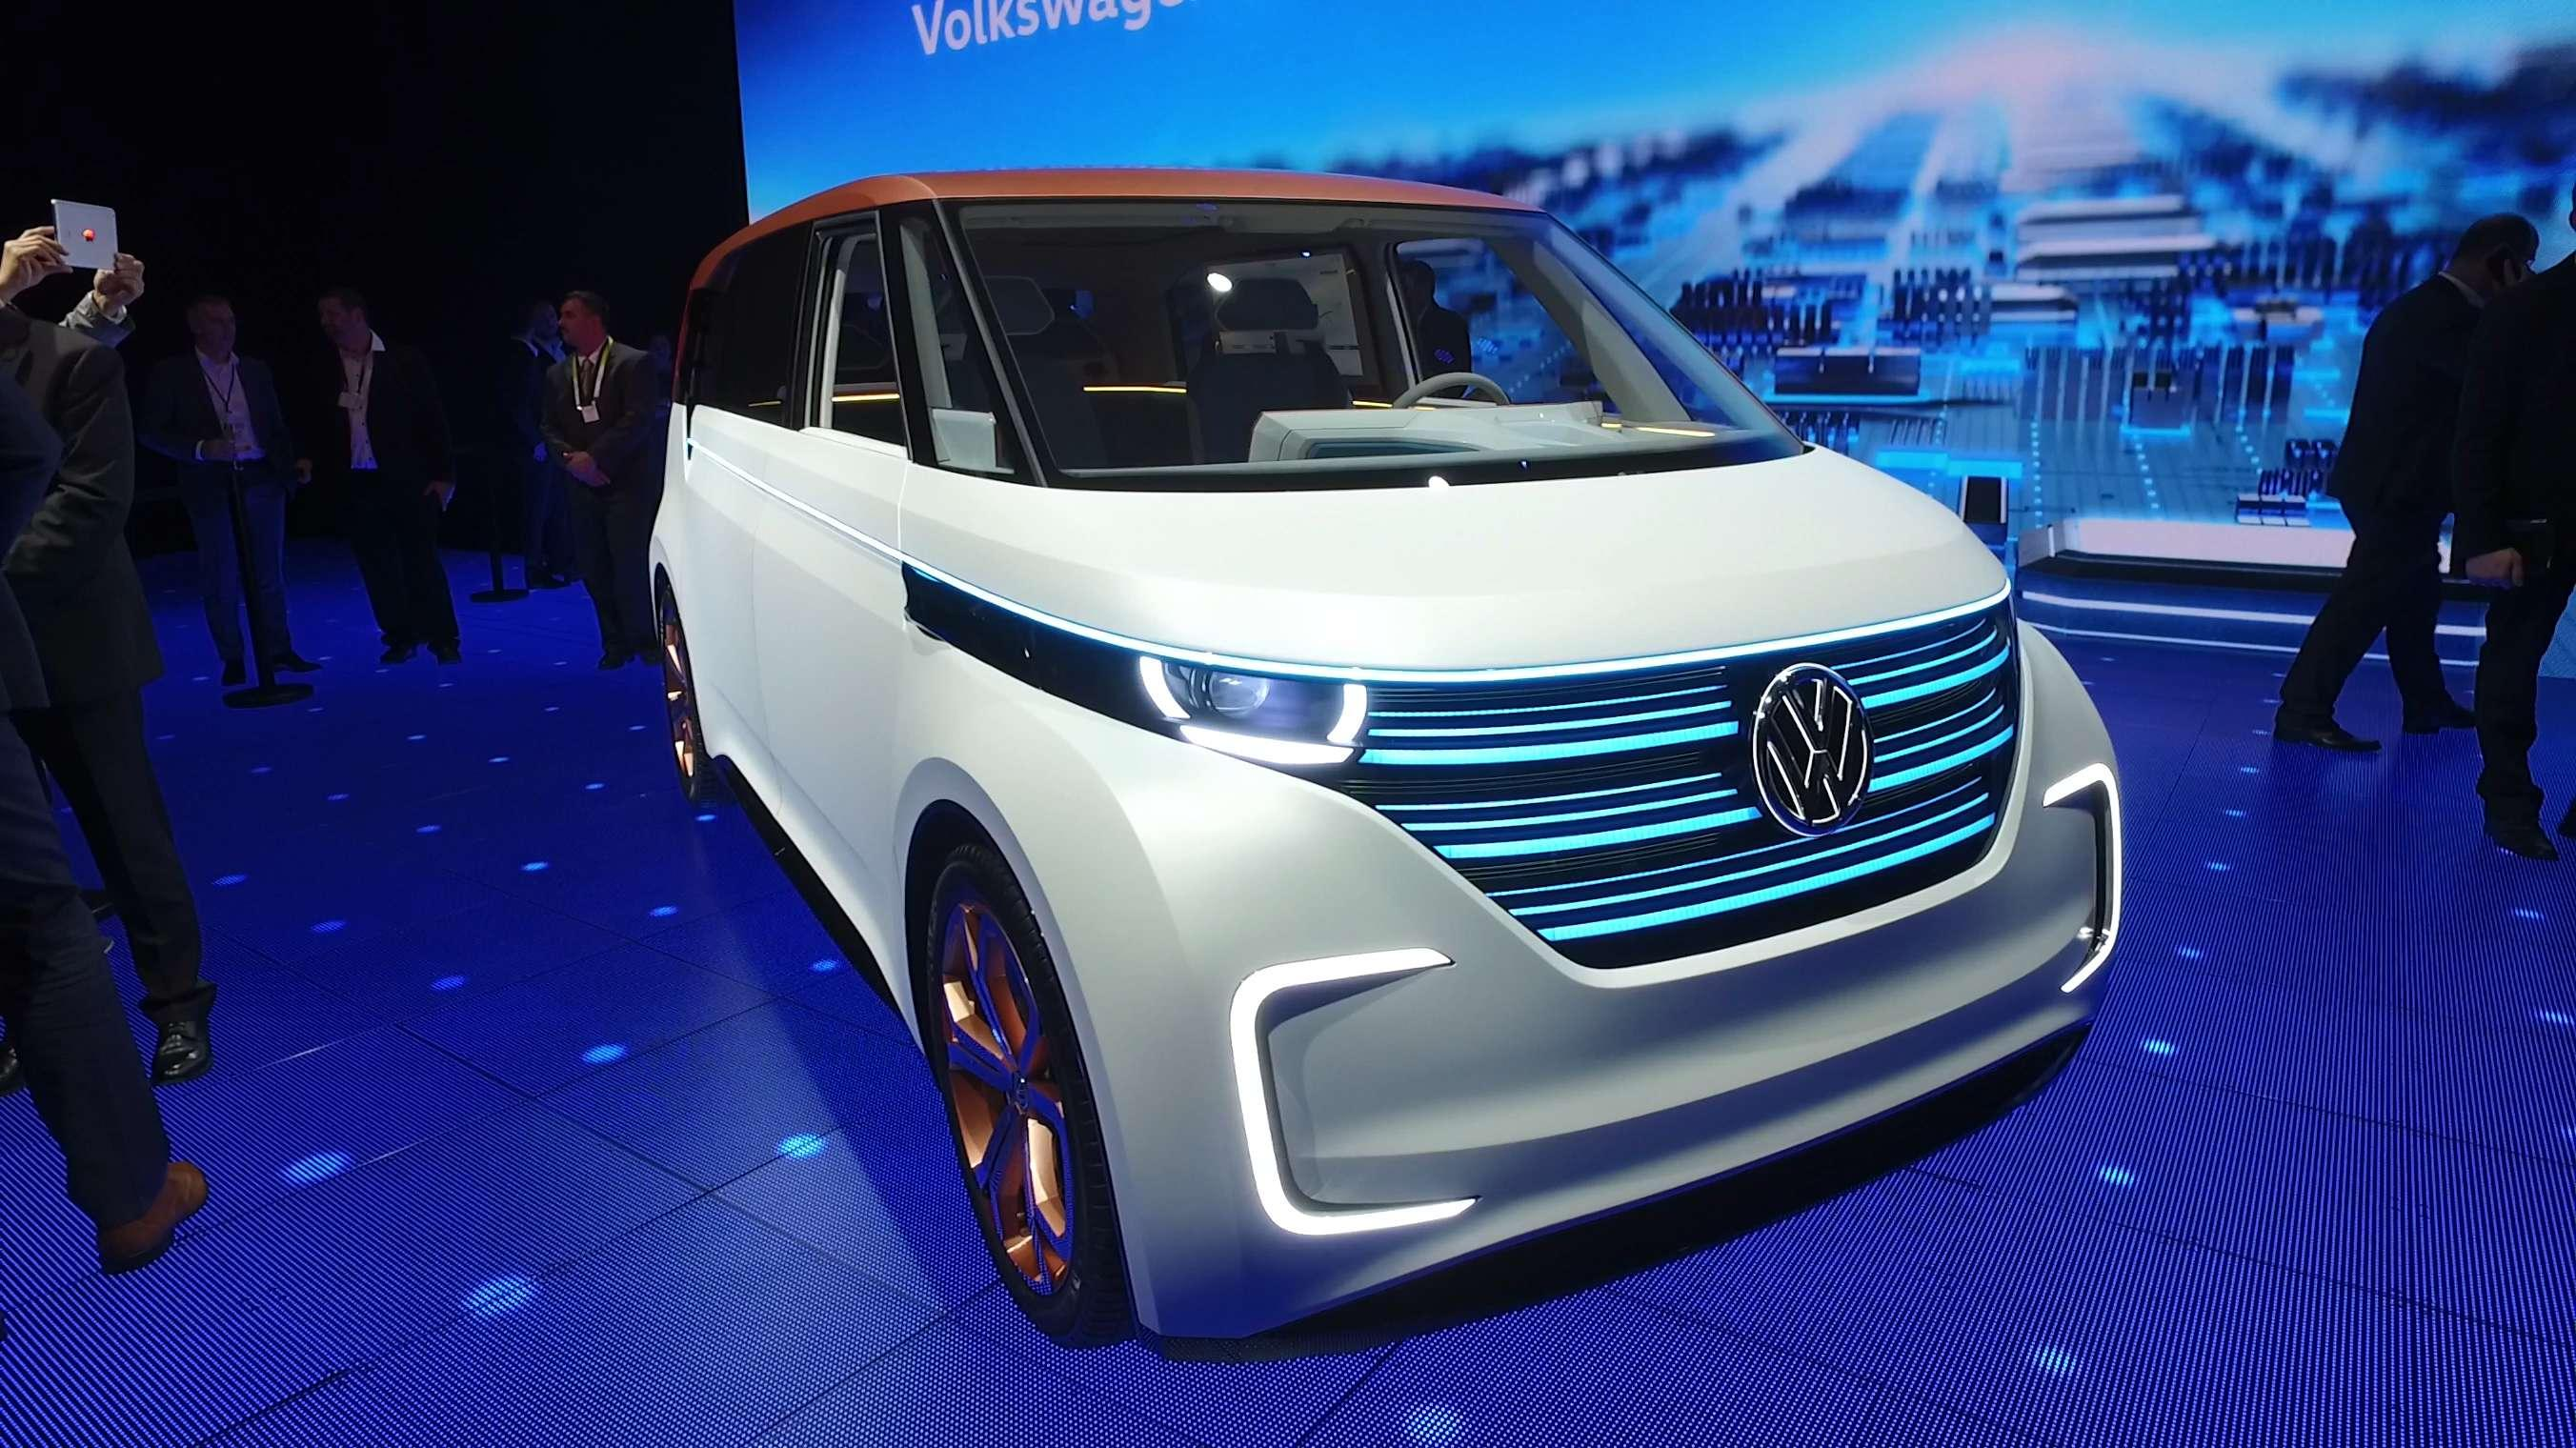 2018 volkswagen bus. simple bus vw unveils electric bus after diesel scandal in 2018 volkswagen bus